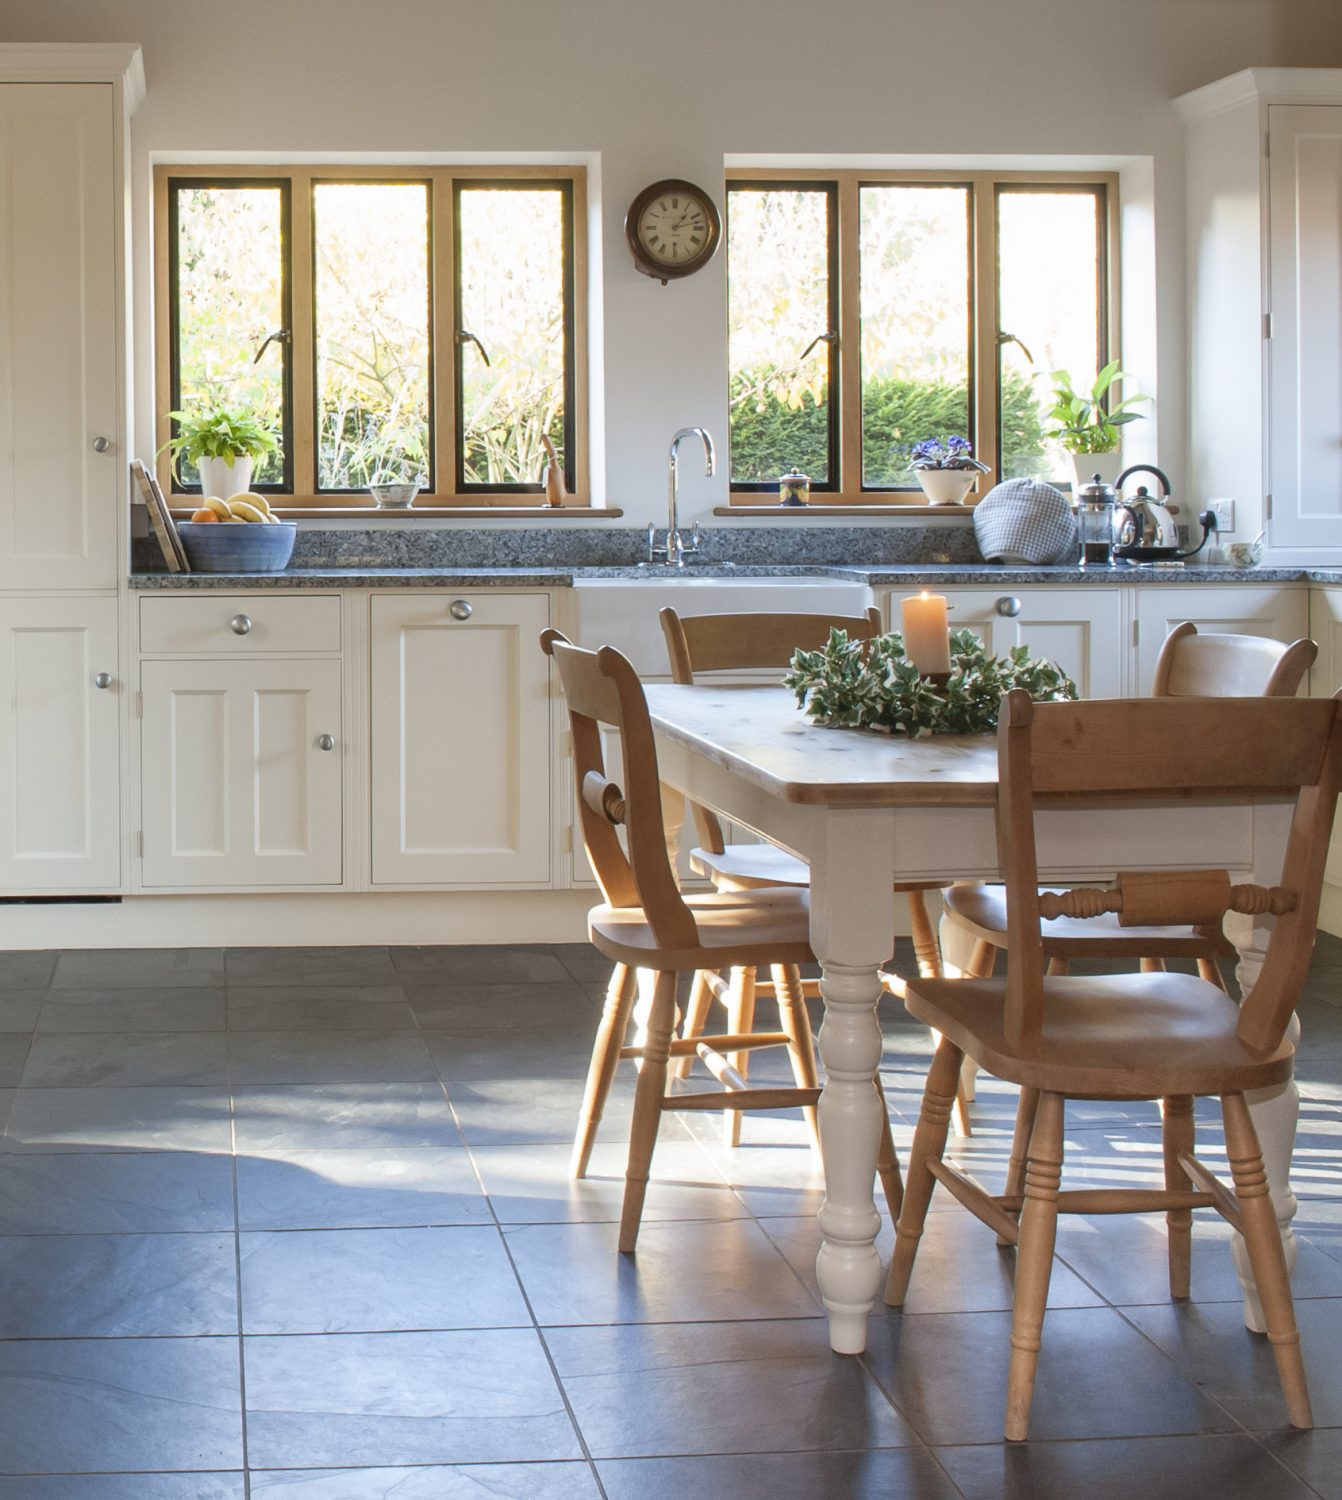 Light grey granite work surfaces and grey slate floor blend effortlessly with the ivory-coloured units and pewter handles